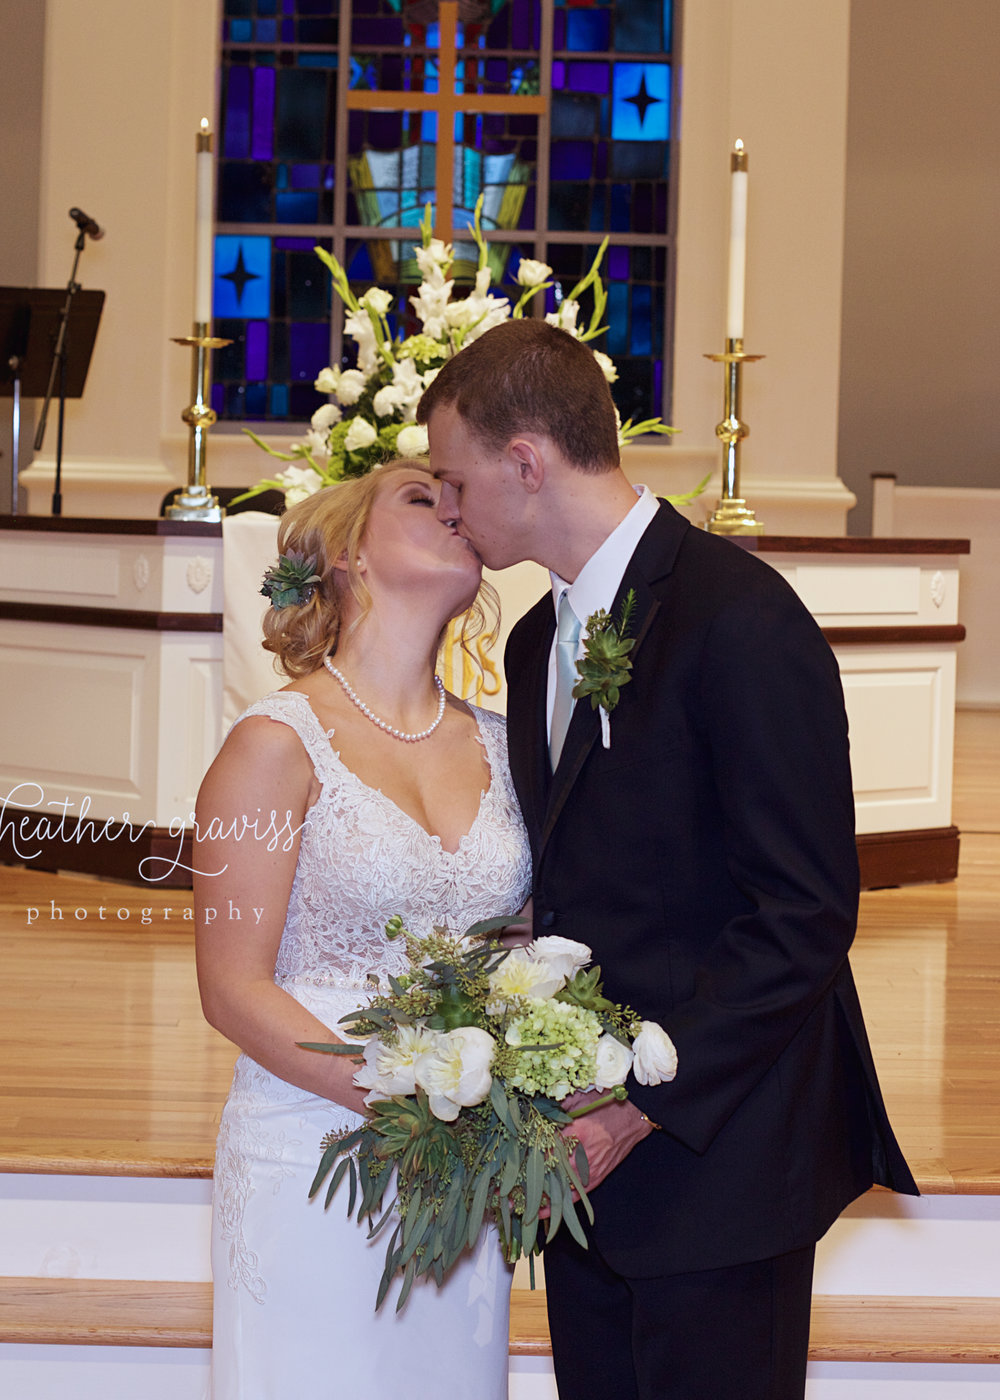 nashville middle tn wedding 108.jpg